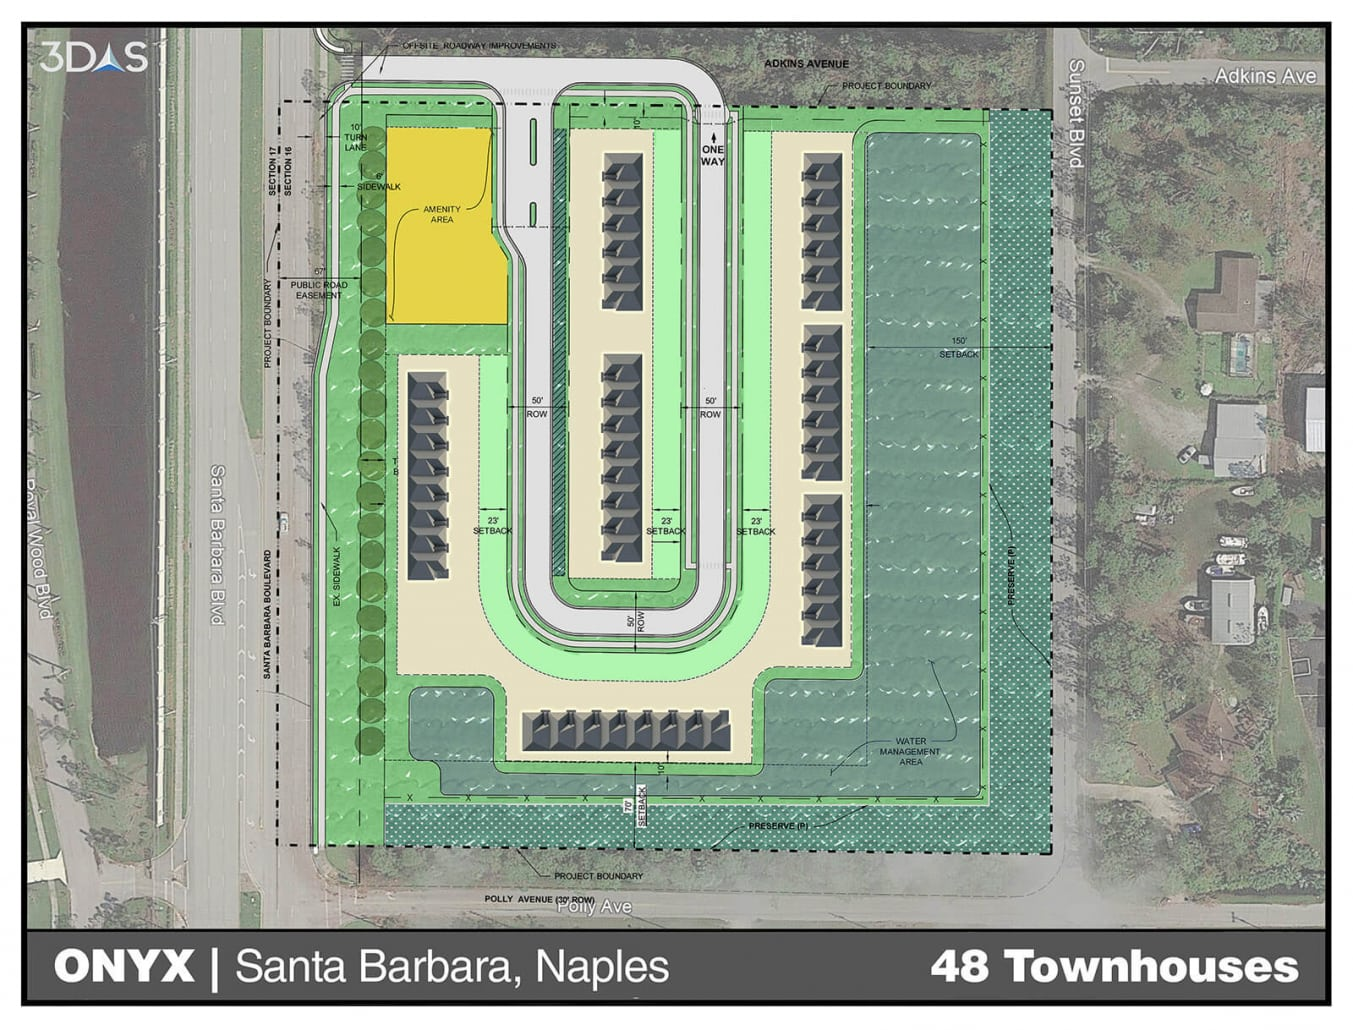 Initial site map of Onyx / Polly avenue community located off of Santa Barbara road in Naples, Florida.